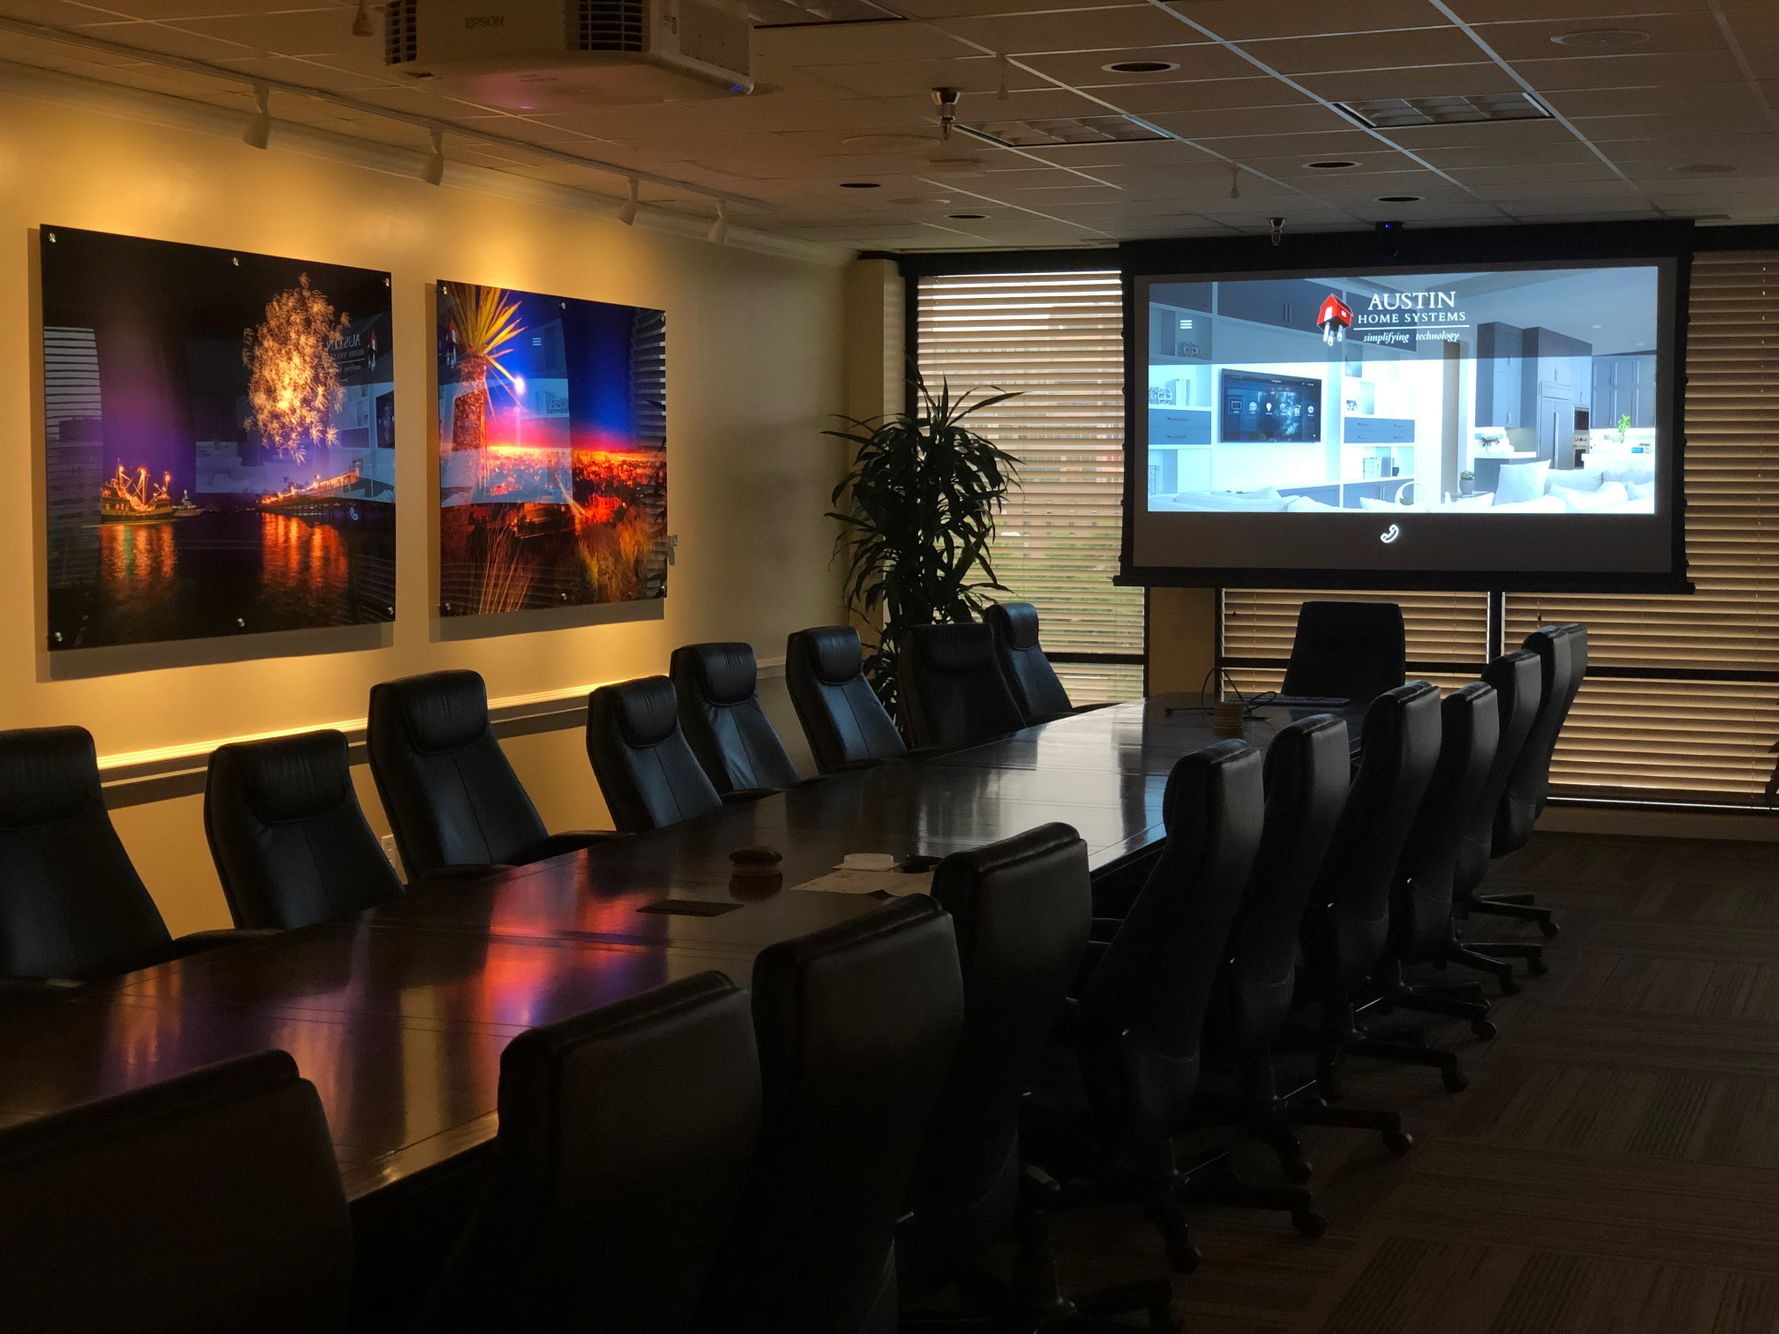 CONFERENCE ROOM  LIGHTING MEDIA CONTROL COMMERCIAL  AUTOMATION  AUSTIN  LAGO VISTA SPICEWOOD  BEE CAVE  LAKEWAY  DRIPPING SPRINGS  WIMBERLY · MARBLE FALLS · WEST LAKE HILLS  FREDERICKSBURG HORSESHOE Bay